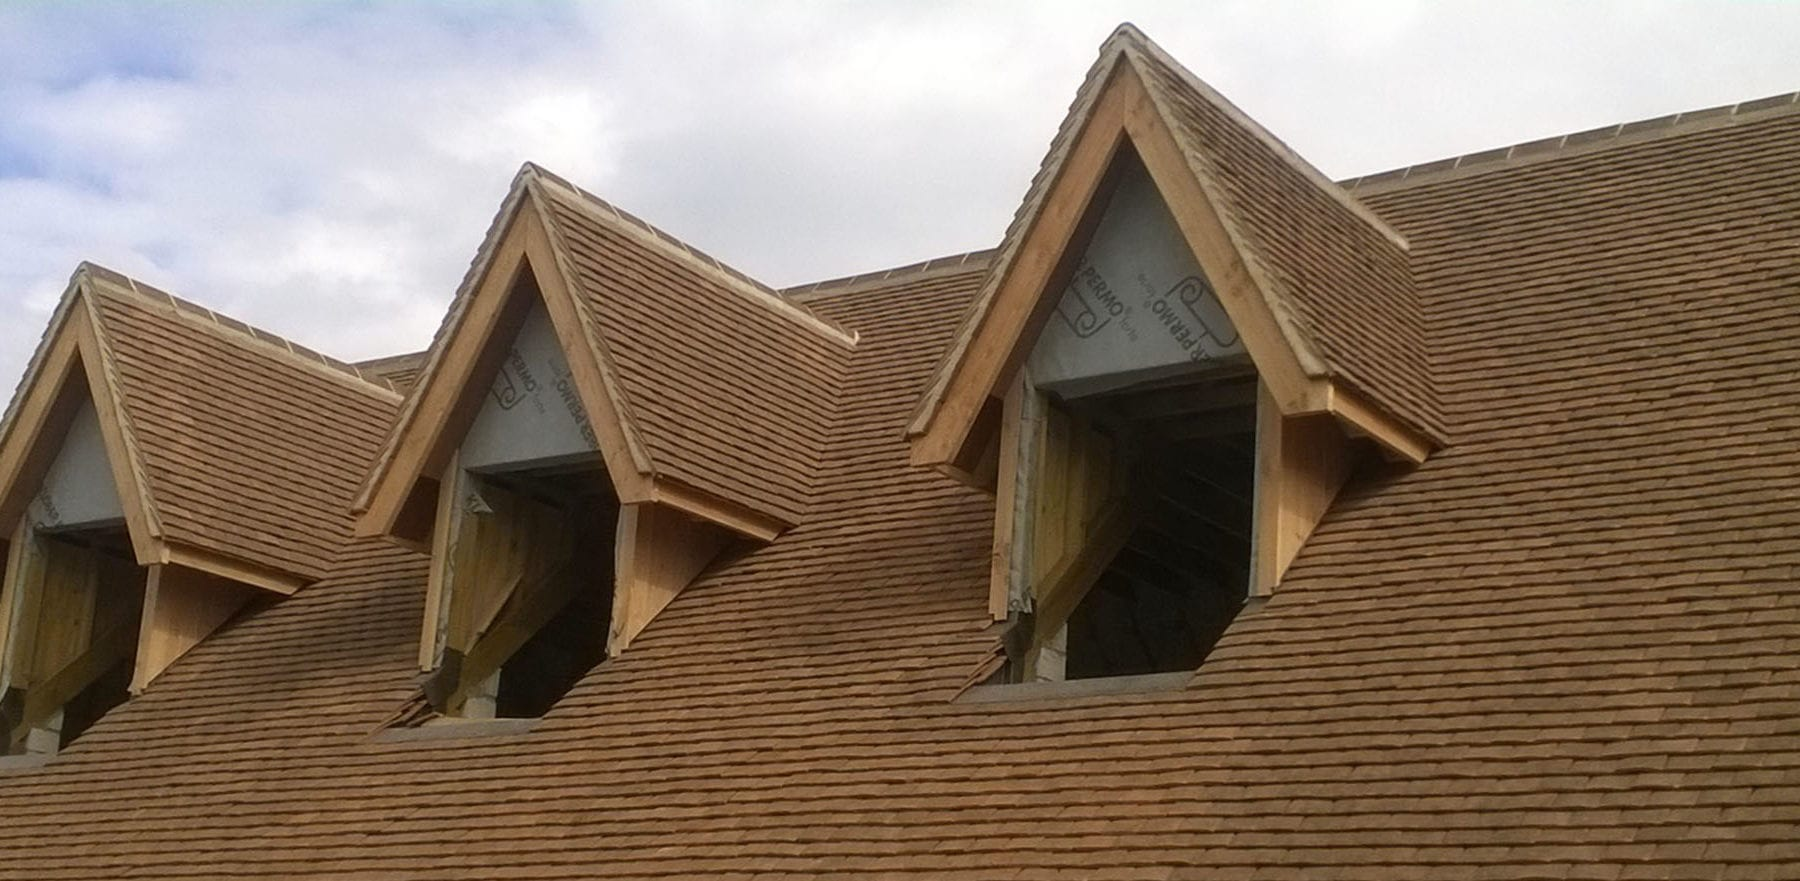 Lifestiles - Handcrafted Foxearth Clay Roof Tiles - Oxford, England 4